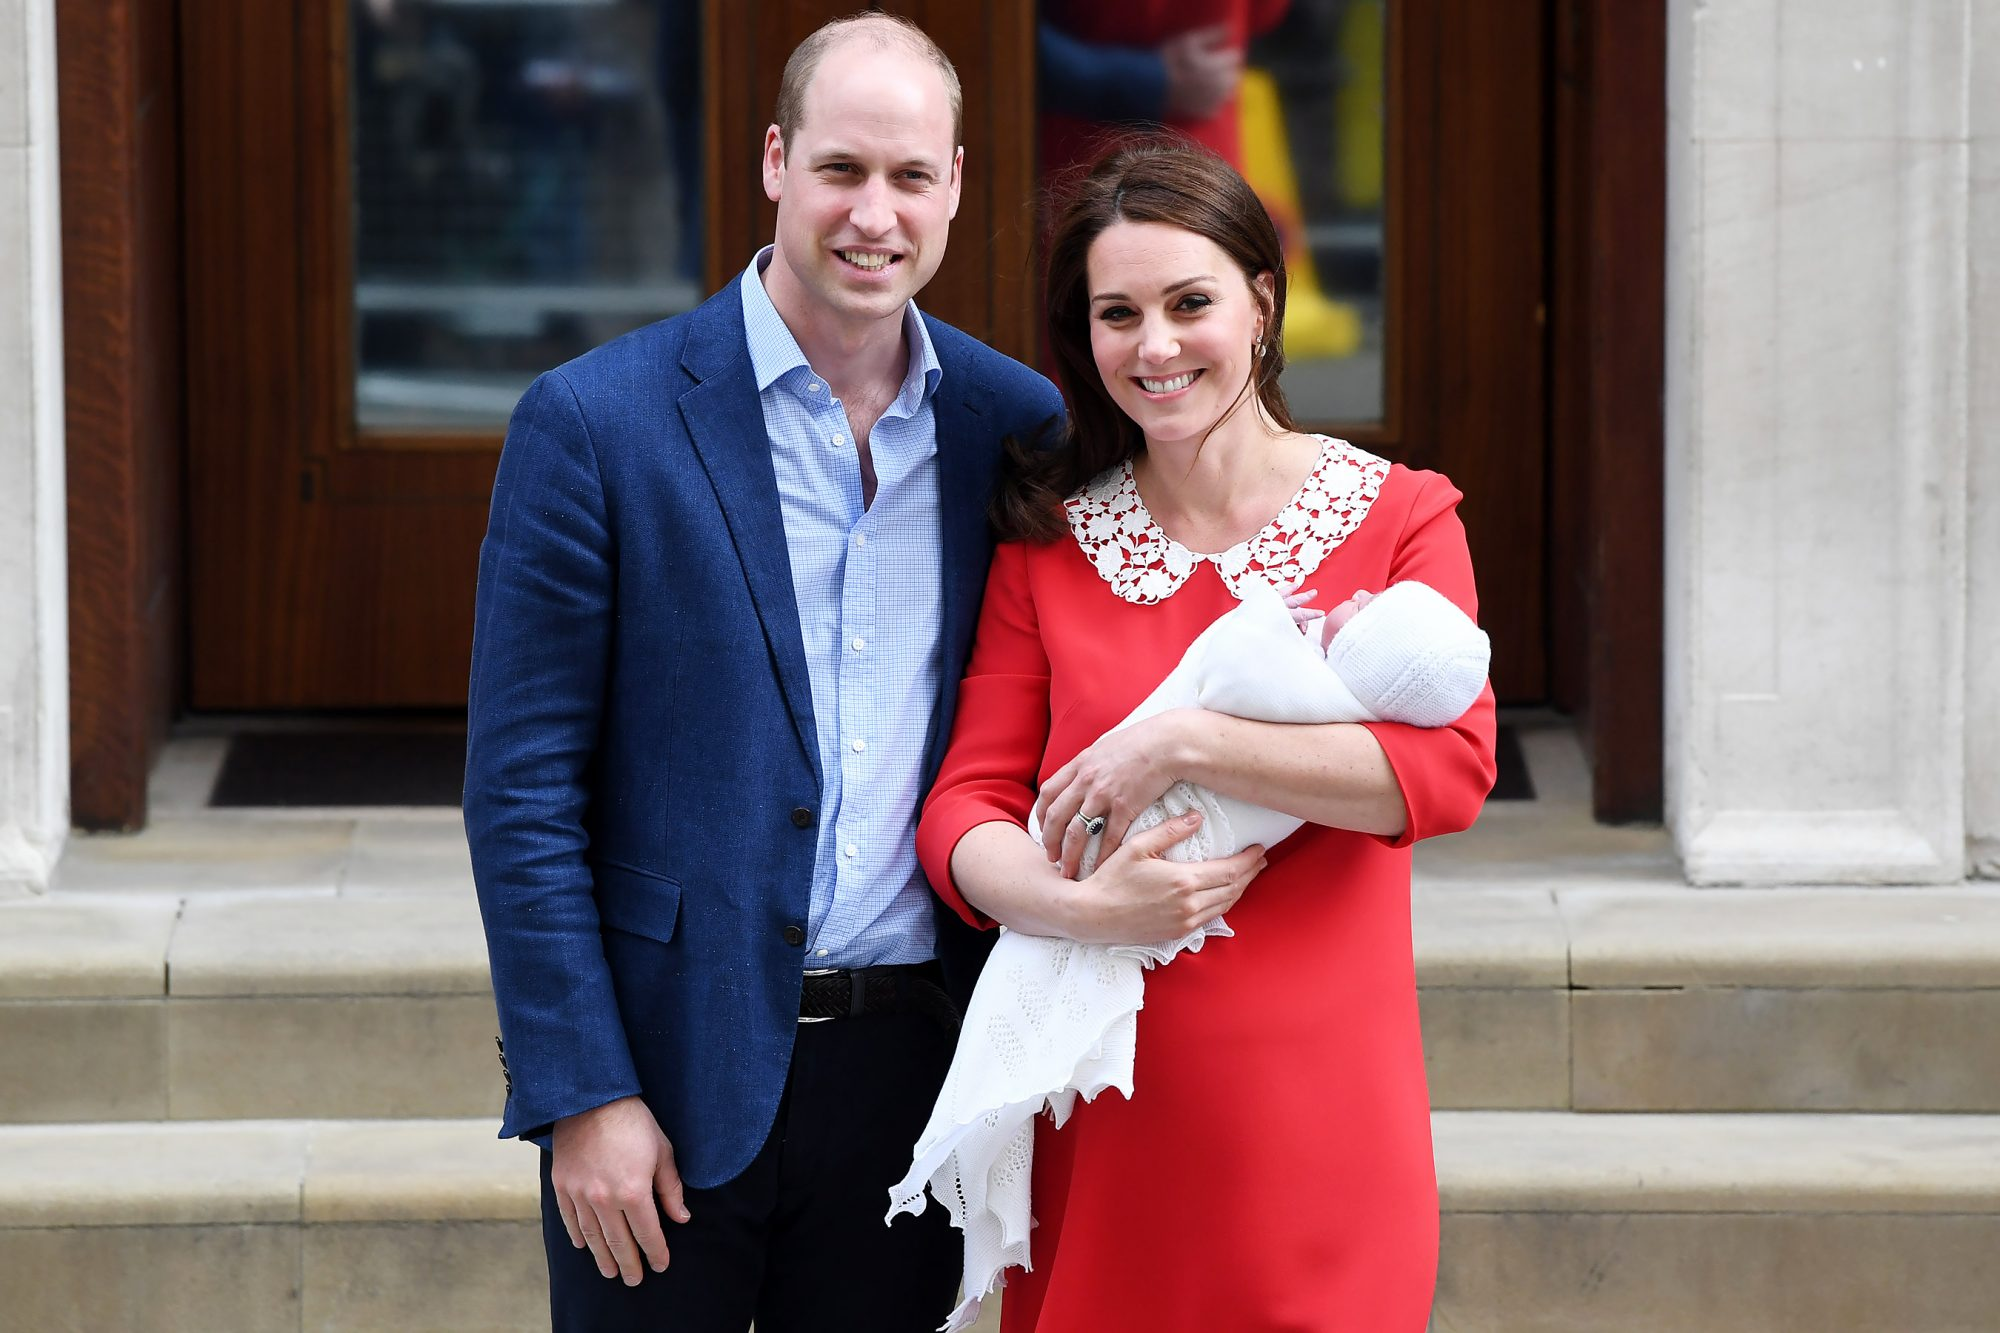 Prince William and Kate Middleton Celebrate Their Anniversary for the First Time as a Family of 5 catherine-b3